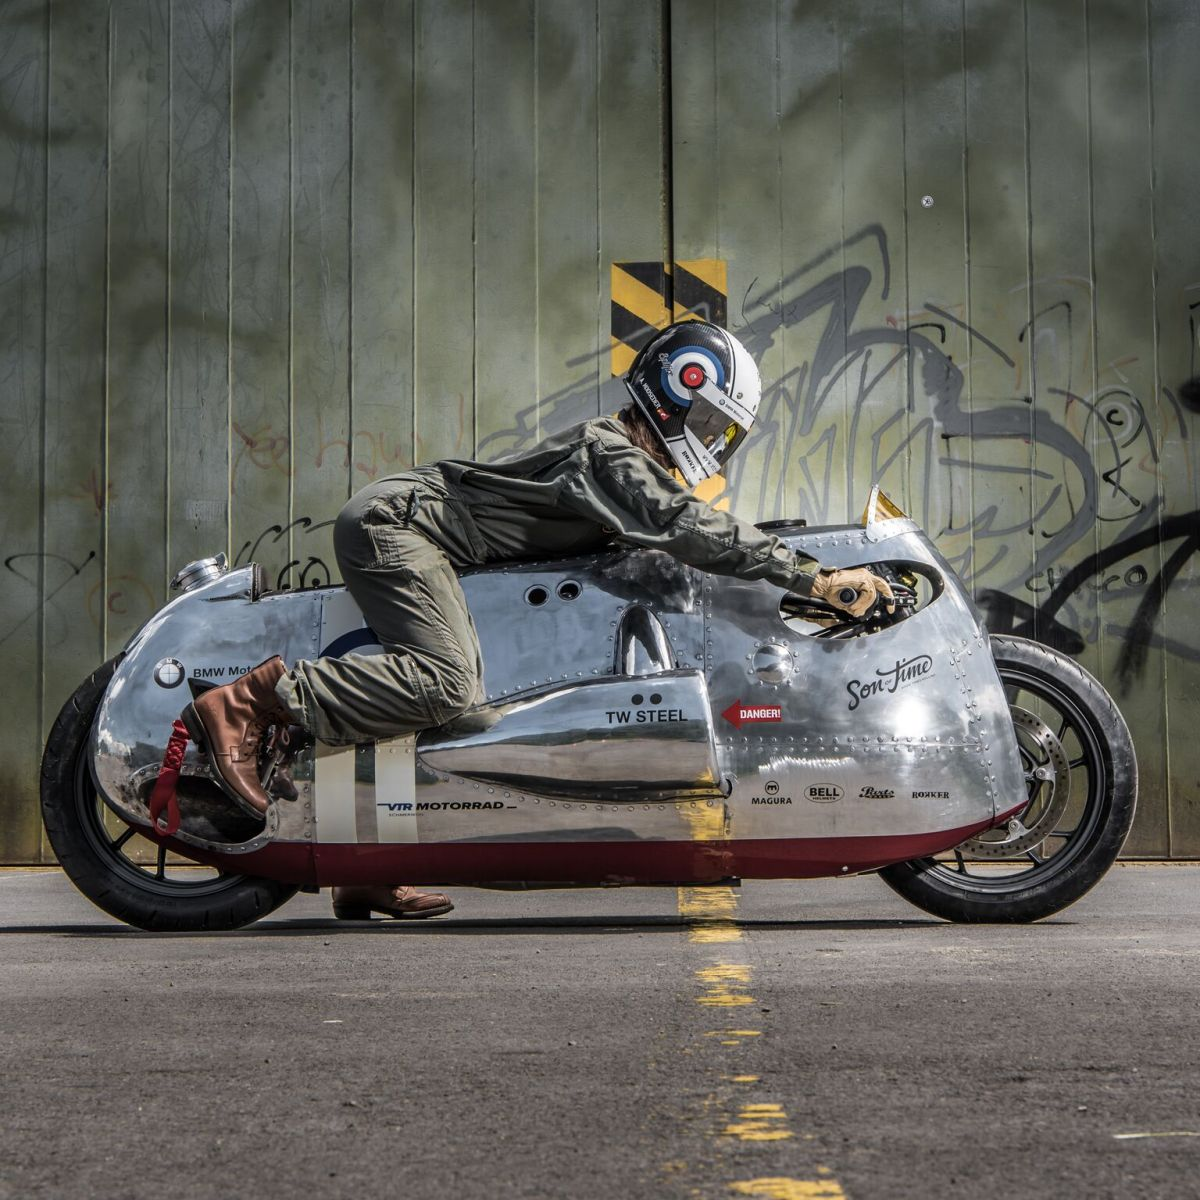 The one-off Spitfire from BMW Motorrad and VTR Customs in Switzerland (Andri Margadant via www.photocab.ch)